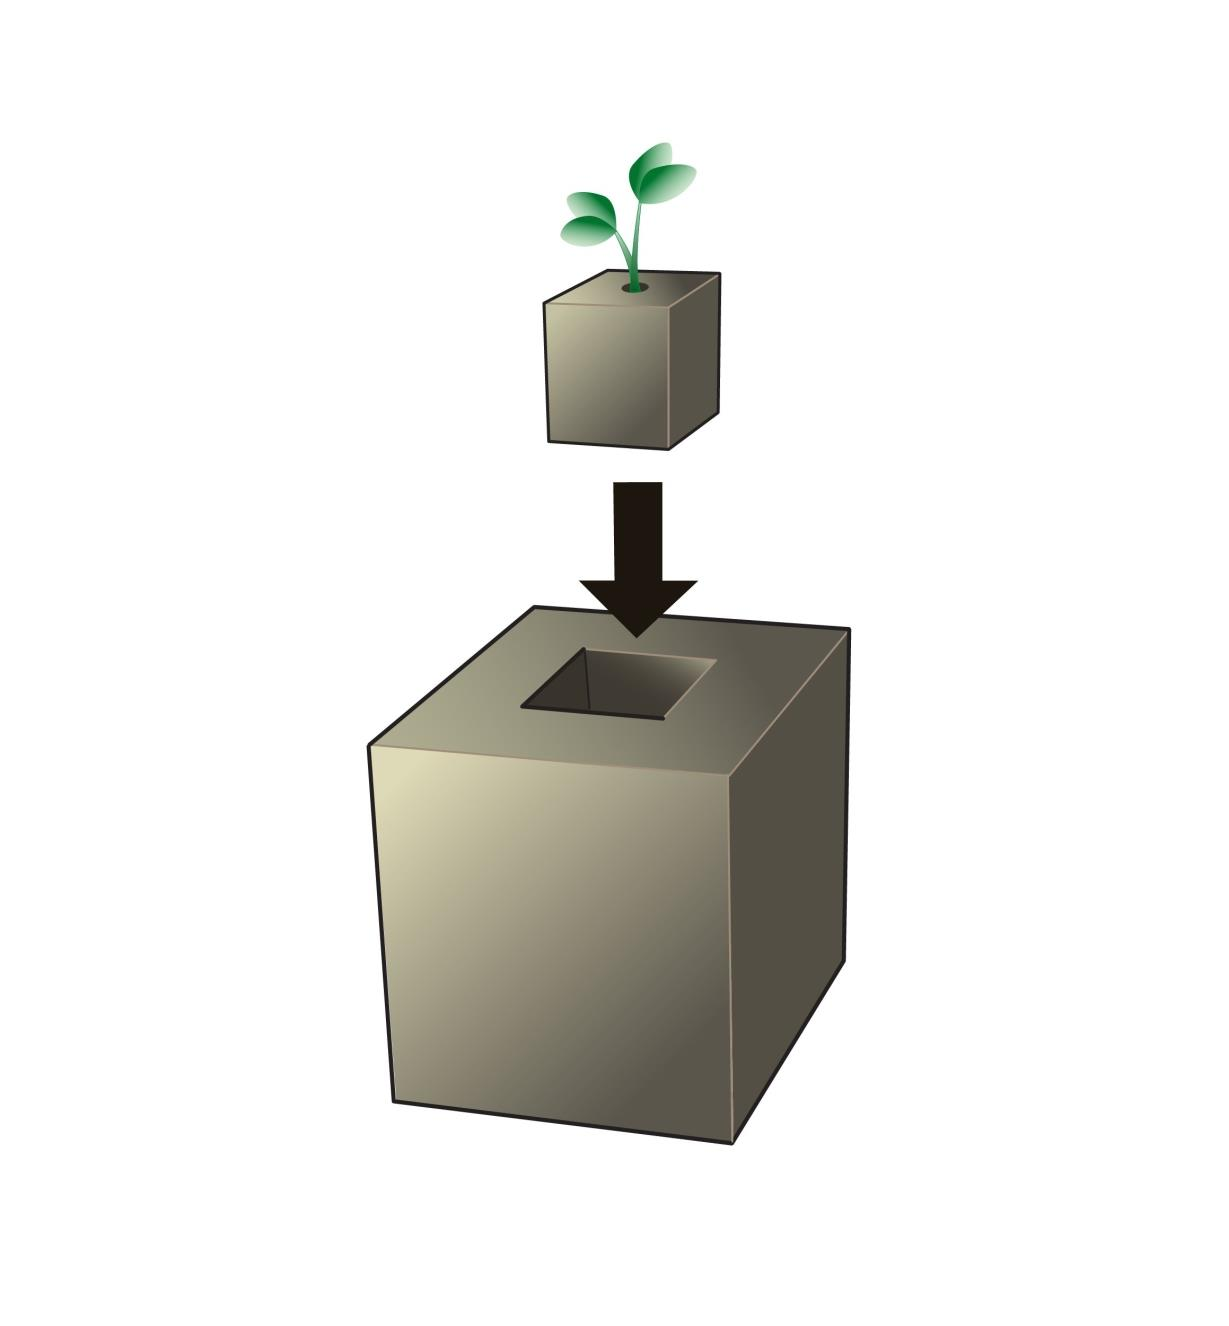 Illustration of seedling in soil cube being transferred into larger soil block made with soil block mold.